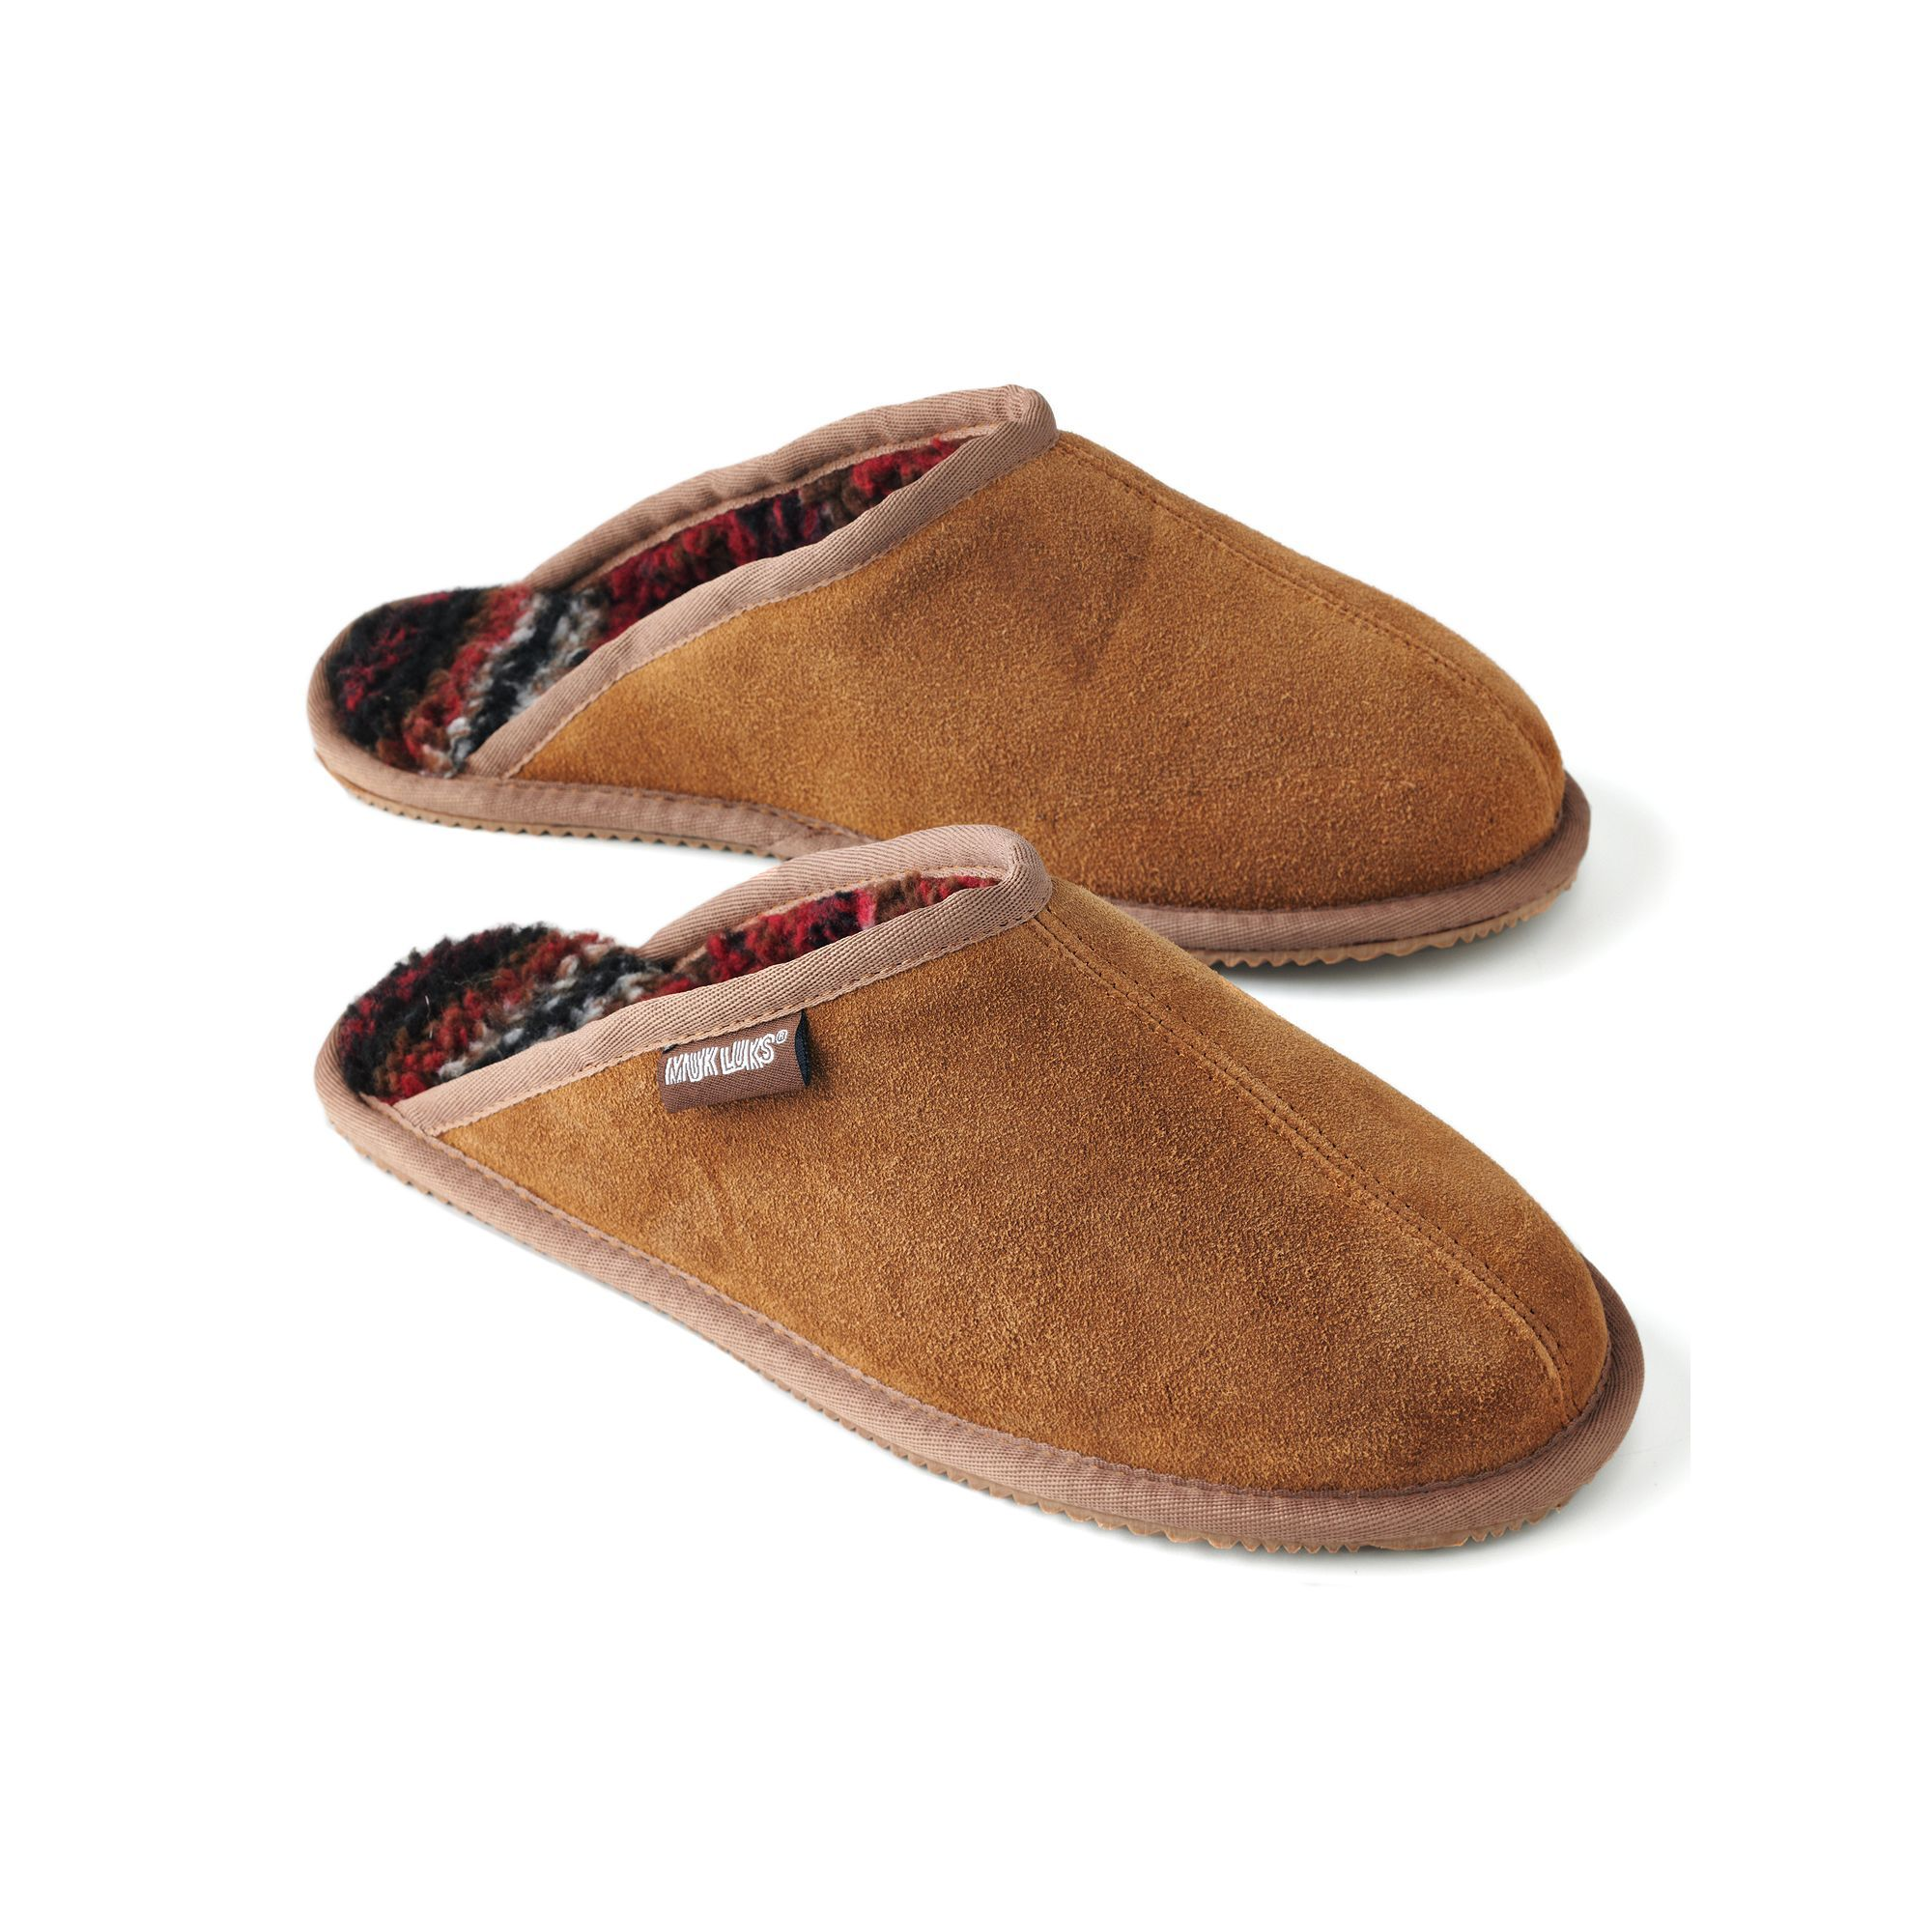 8f4a86ca208 MUK LUKS Men's Leather Suede Berber Fleece Scuff Slippers, Size: 13 ...